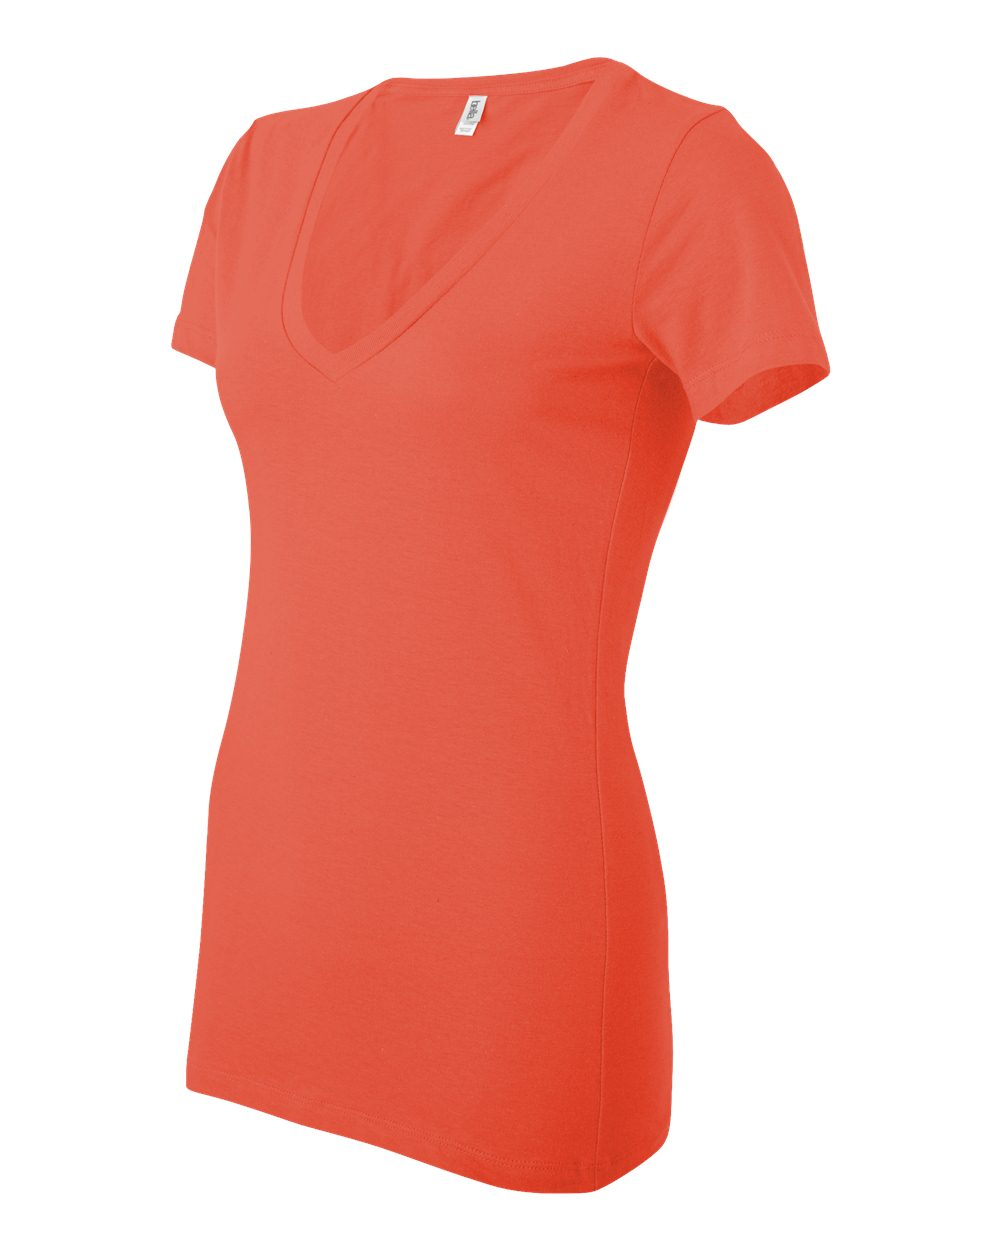 Bella-Canvas-Women-039-s-Jersey-Short-Sleeve-Deep-V-Neck-T-Shirt-B6035-S-2XL thumbnail 81